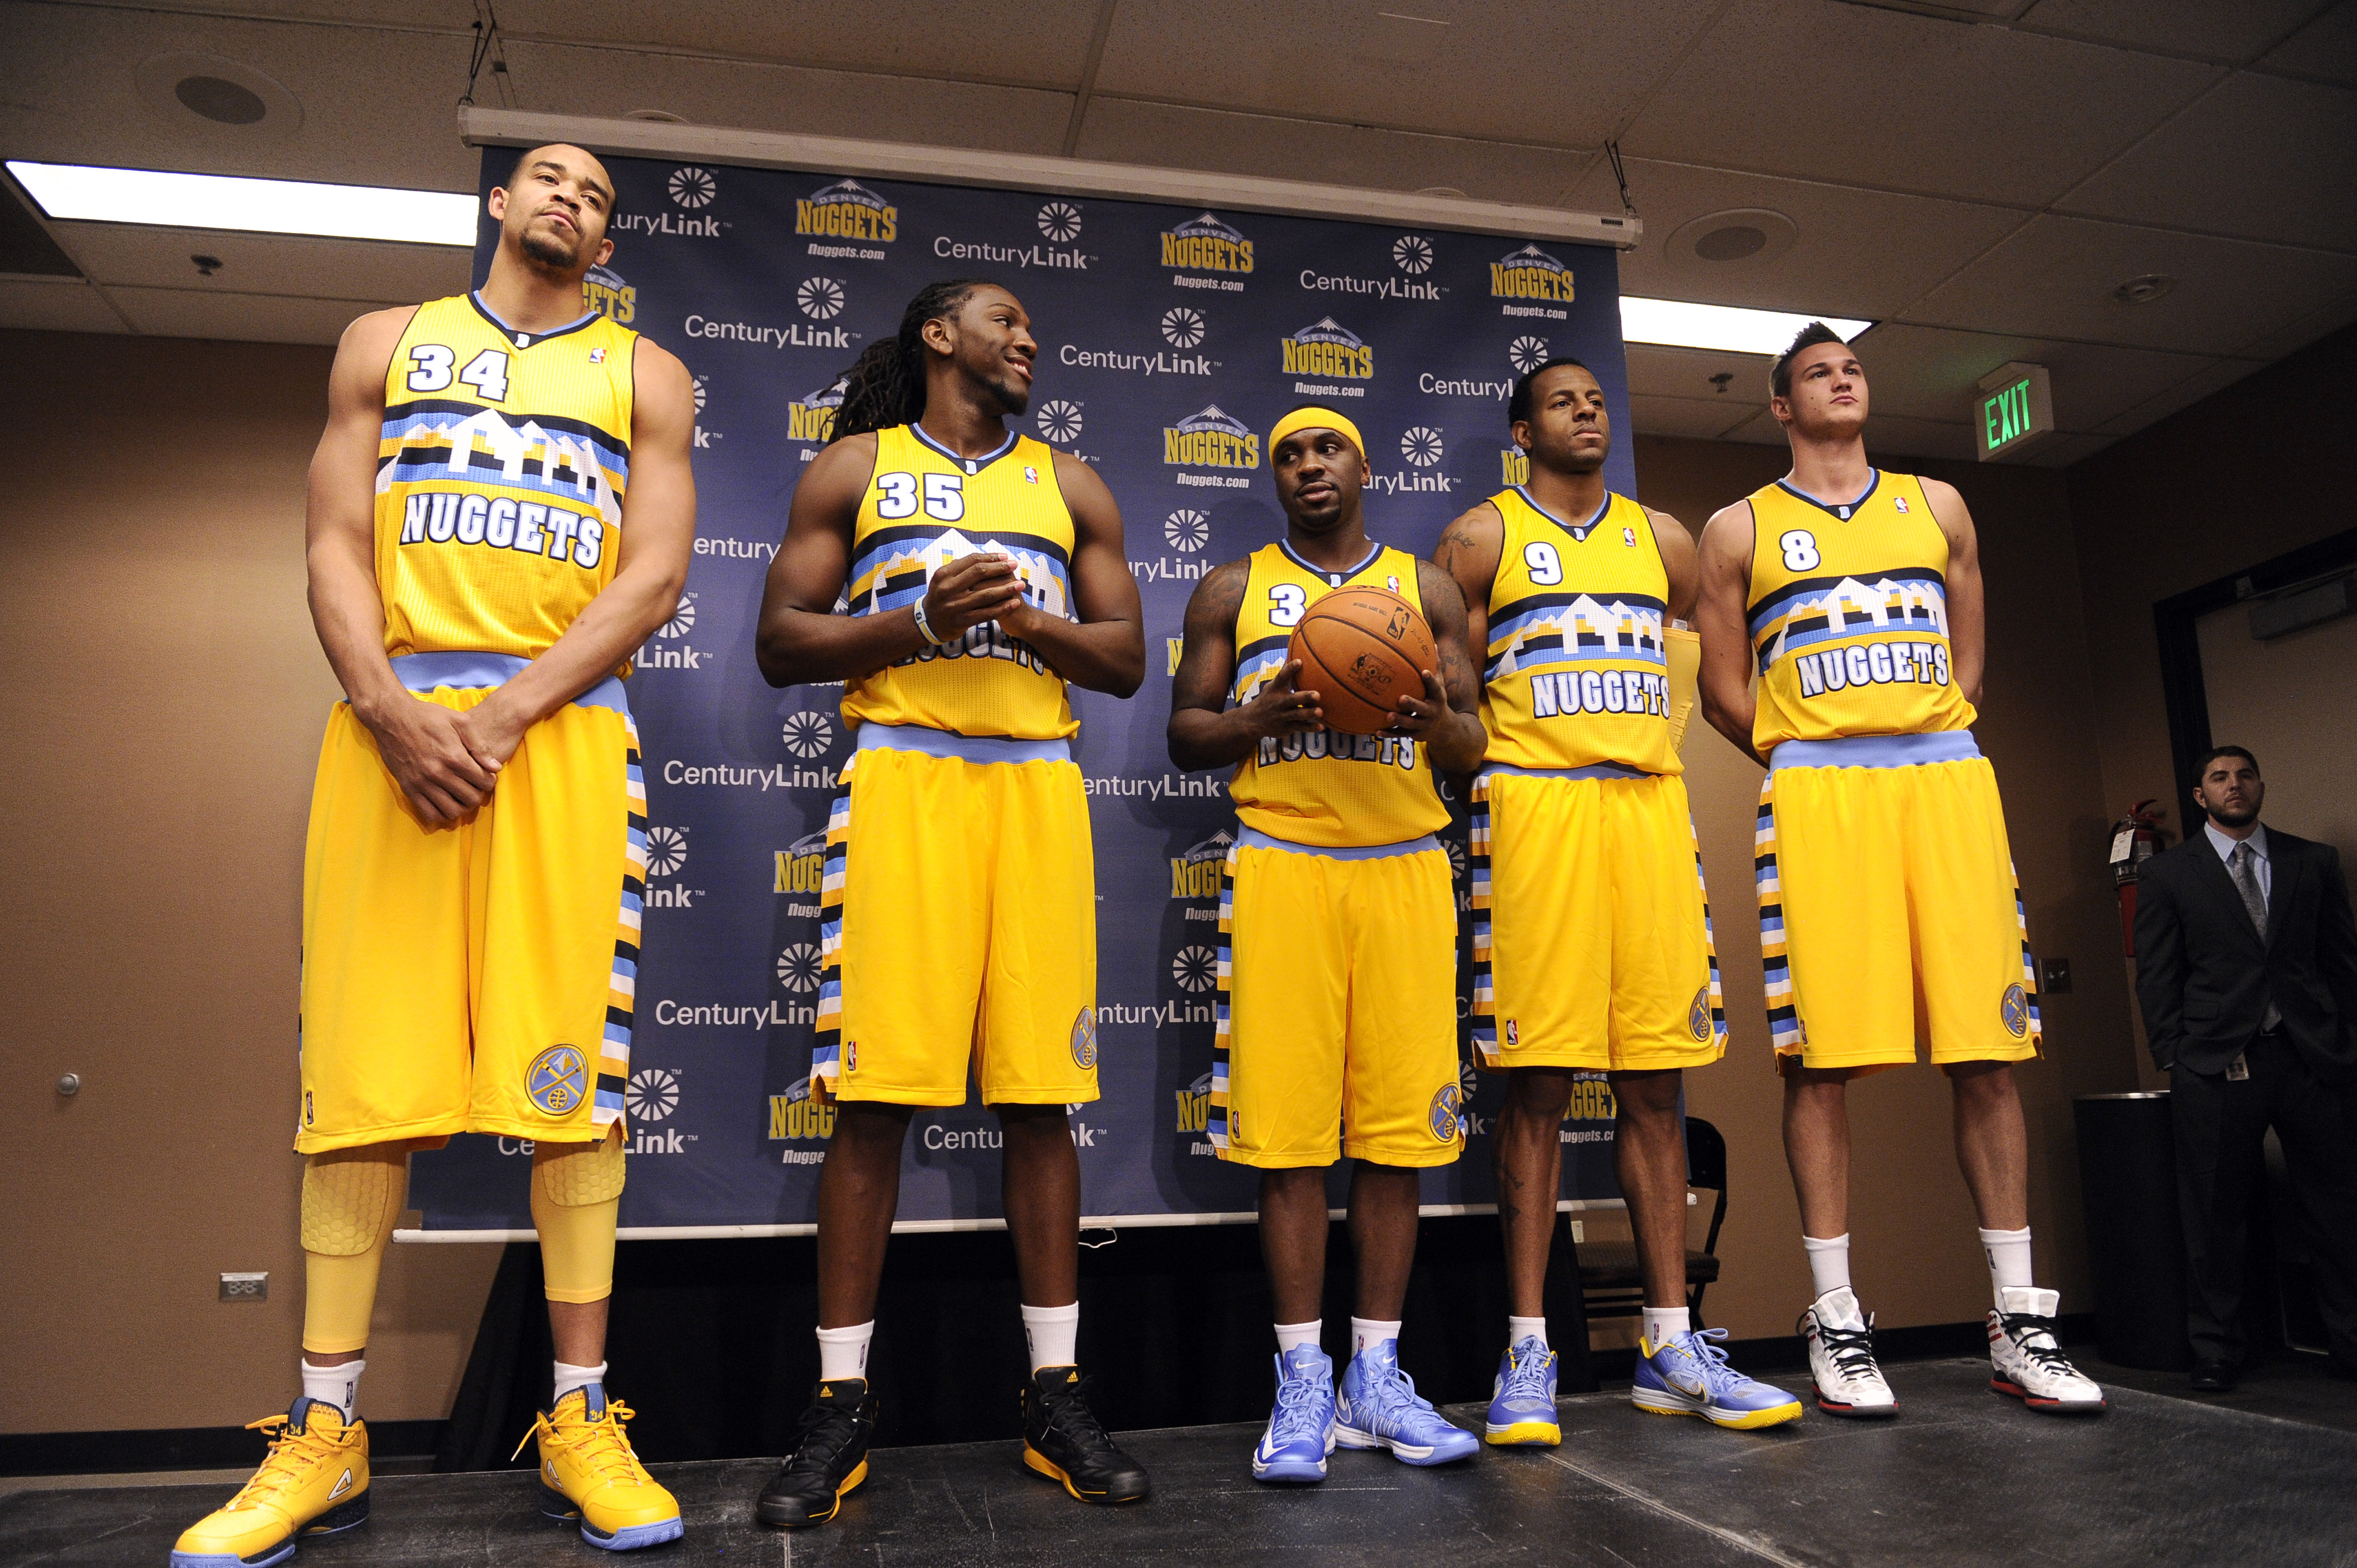 nuggets_uniform_jlnuggets_uniformJL